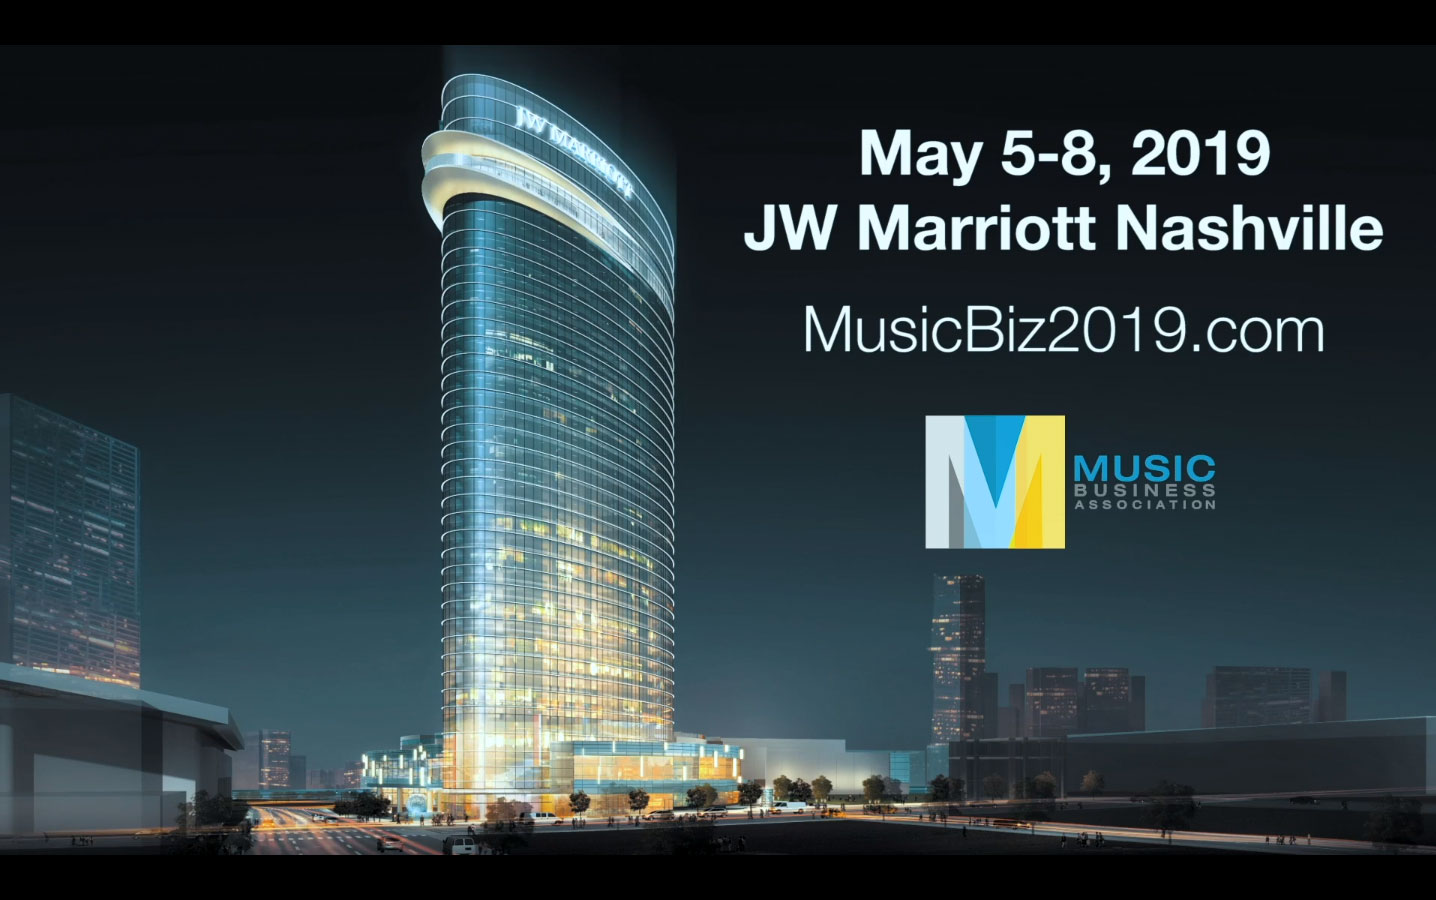 Dance Plant will attend MUSIC BIZ 2019 in Nashville